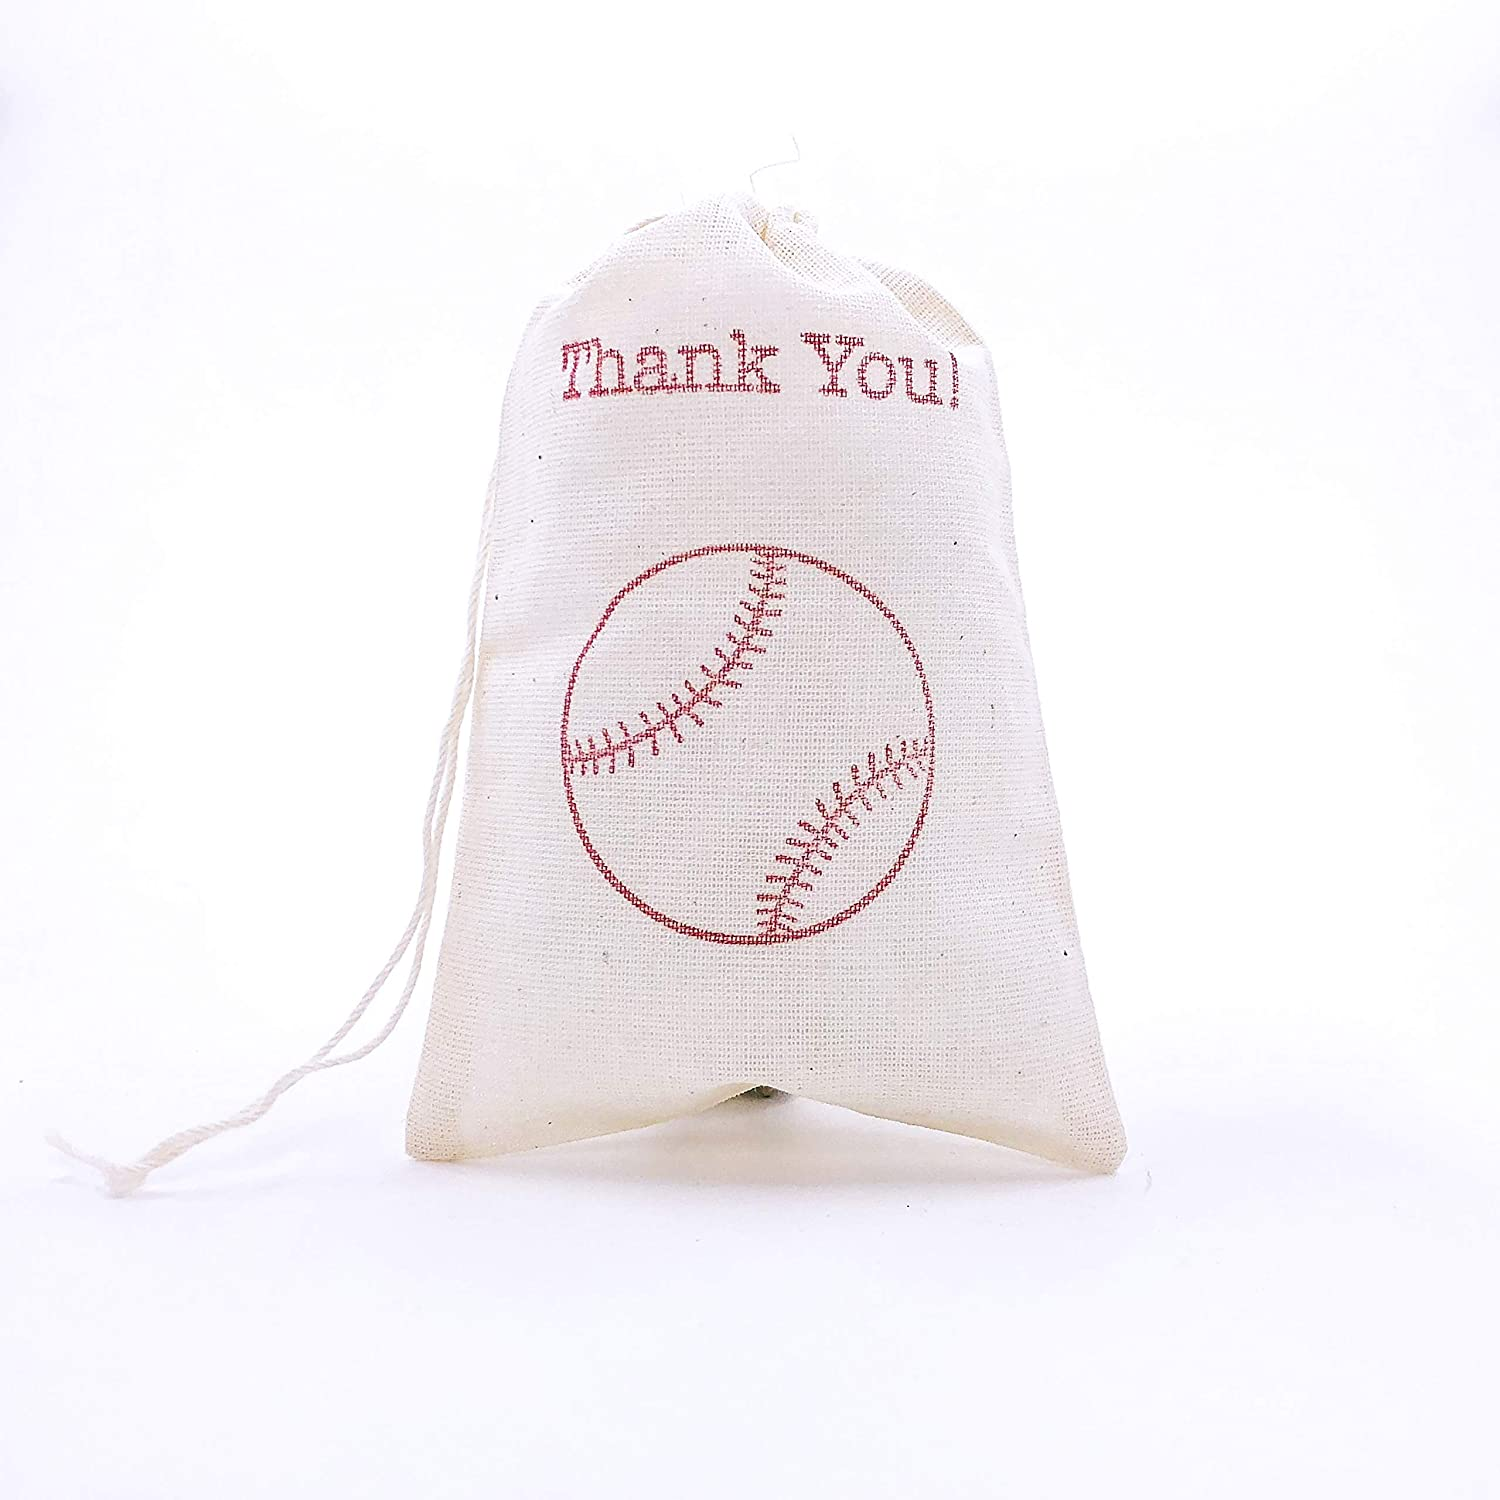 96 PERSONALIZED Vintage Muslin Favor Bags Baby Shower Wedding Favors